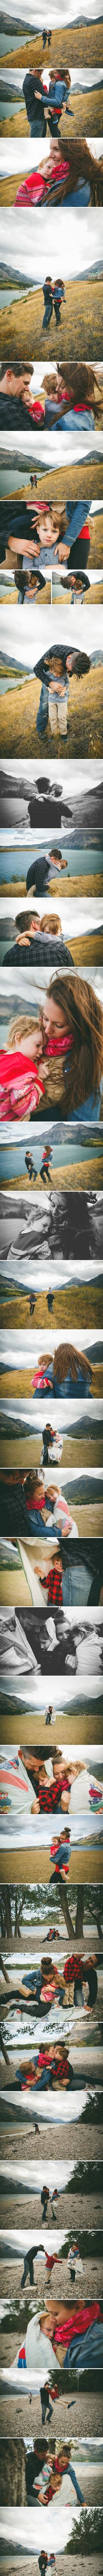 family photography in the mountains | ©The Paper Deer Photography | thepaperdeer.ca